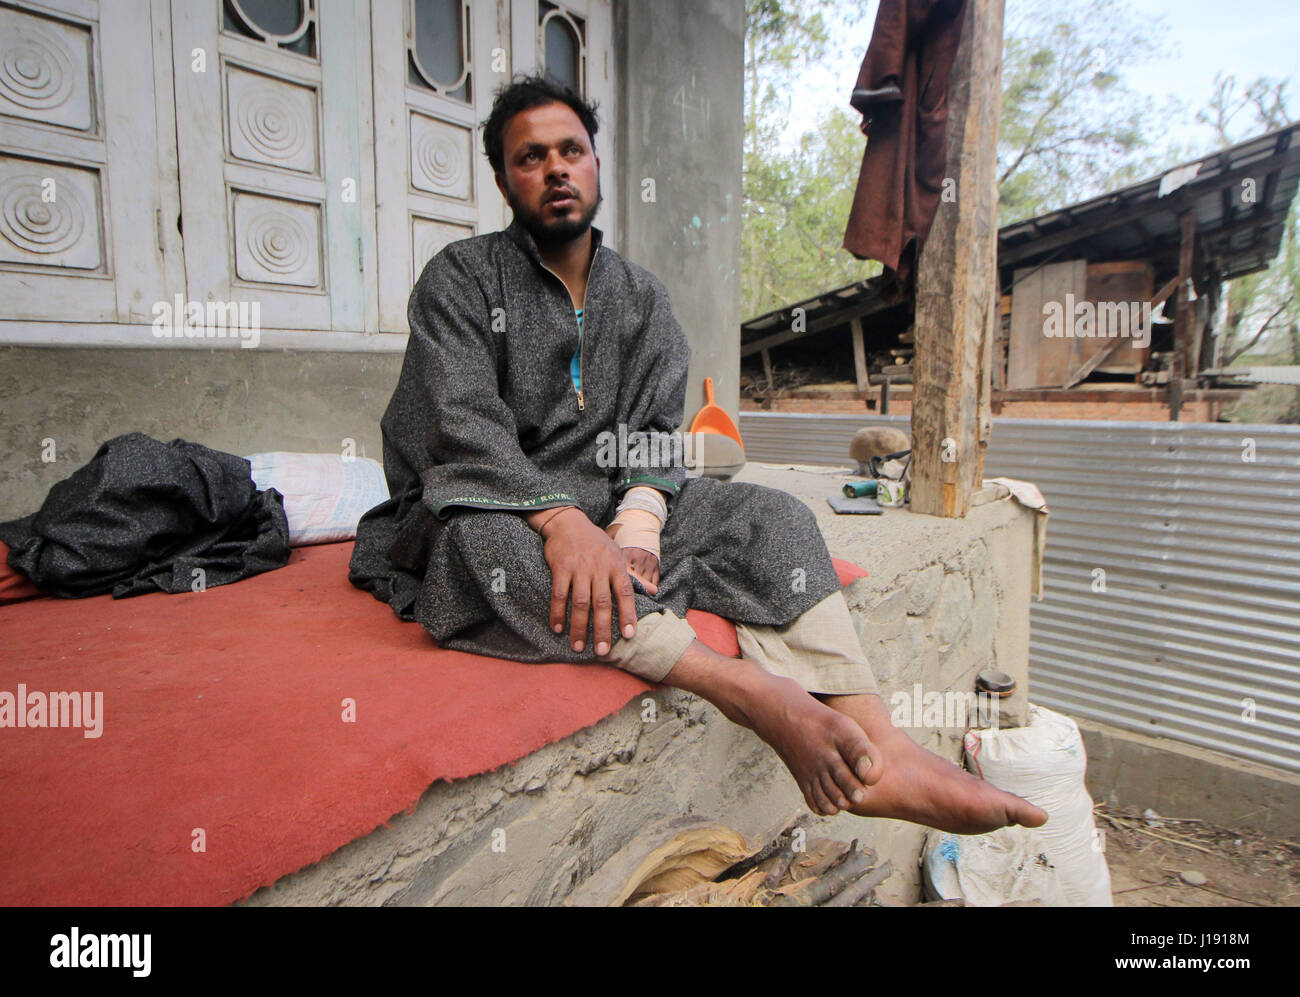 Farooq Ahmed Dar, who was used as human shield by Indian Army by strapping him to a jeep on April 9, 2017. (Photo Stock Photo